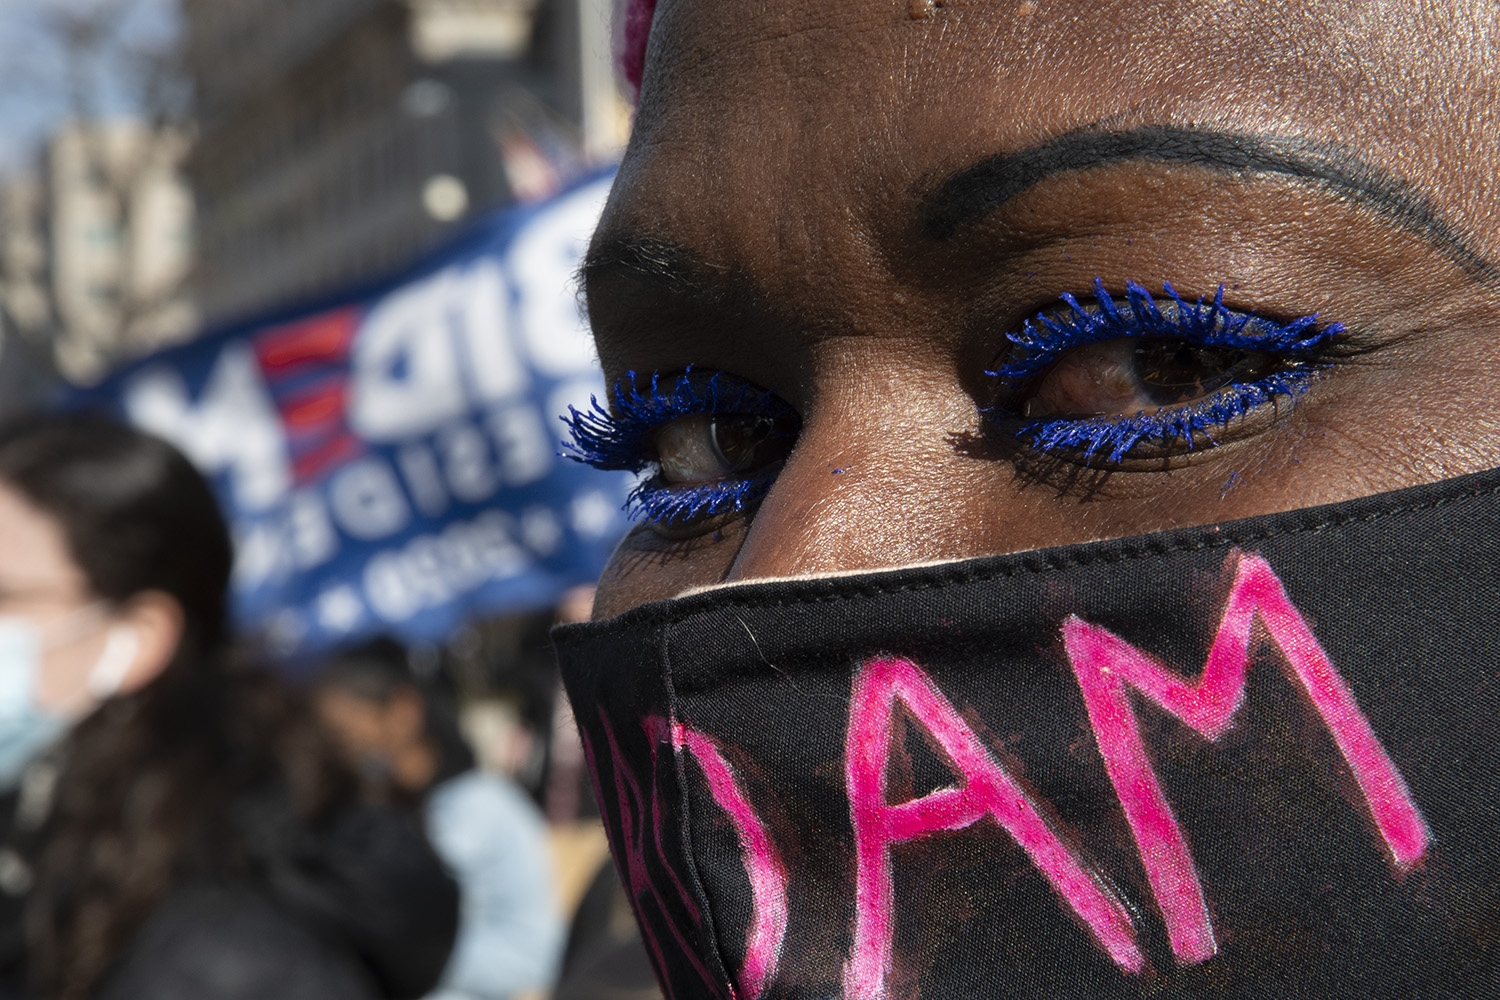 Close-up image of a black woman from her forehead to her mouth. She wears bright blue eyeliner and a black mask with the letters DAM in pink paint on the fabric. She looks directly at the camera, while behind her is a crowd and a blury Biden for President flag.